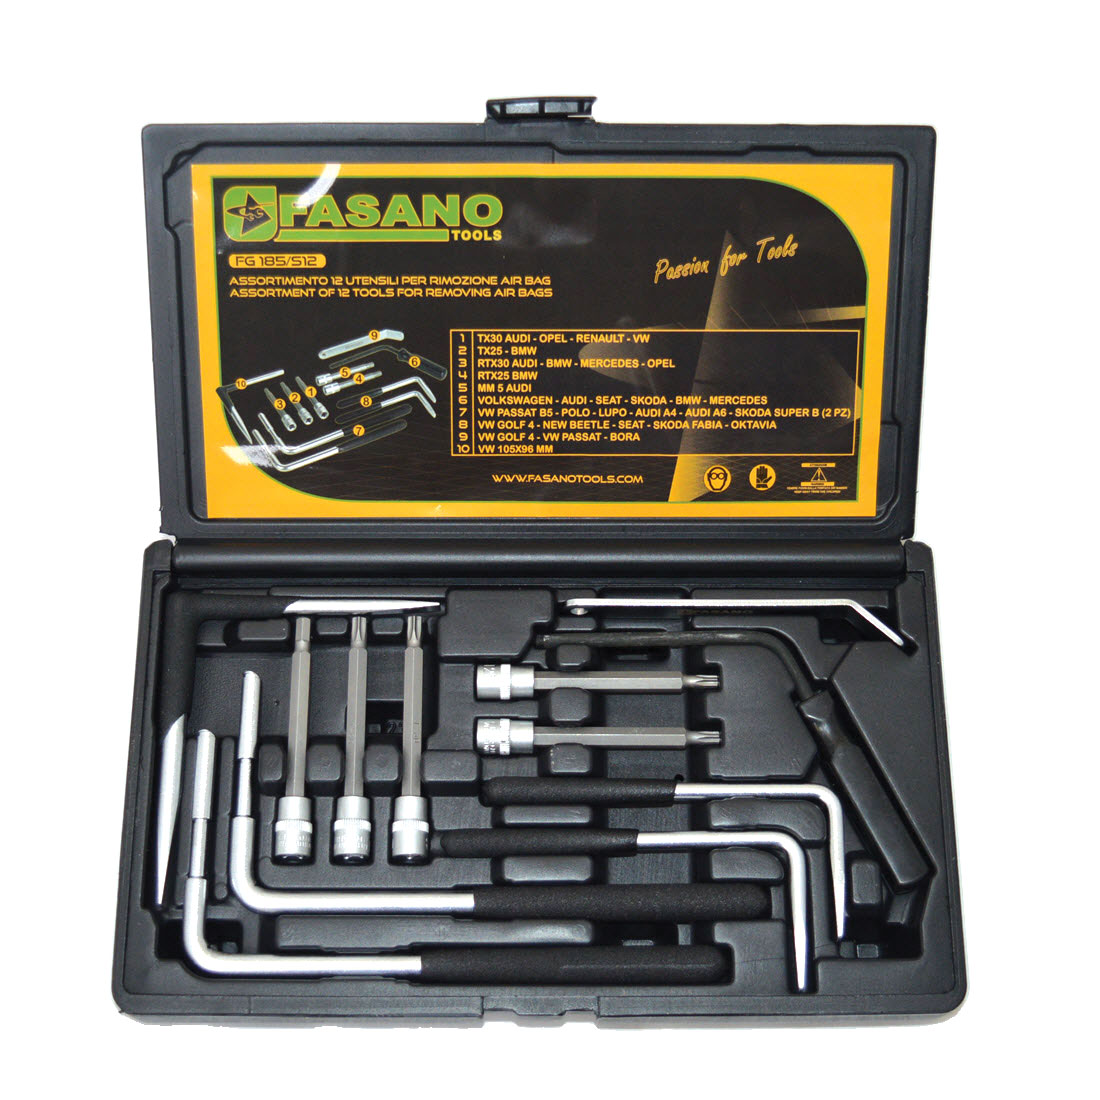 air bag, Universal tools for expanding air bag, fasano